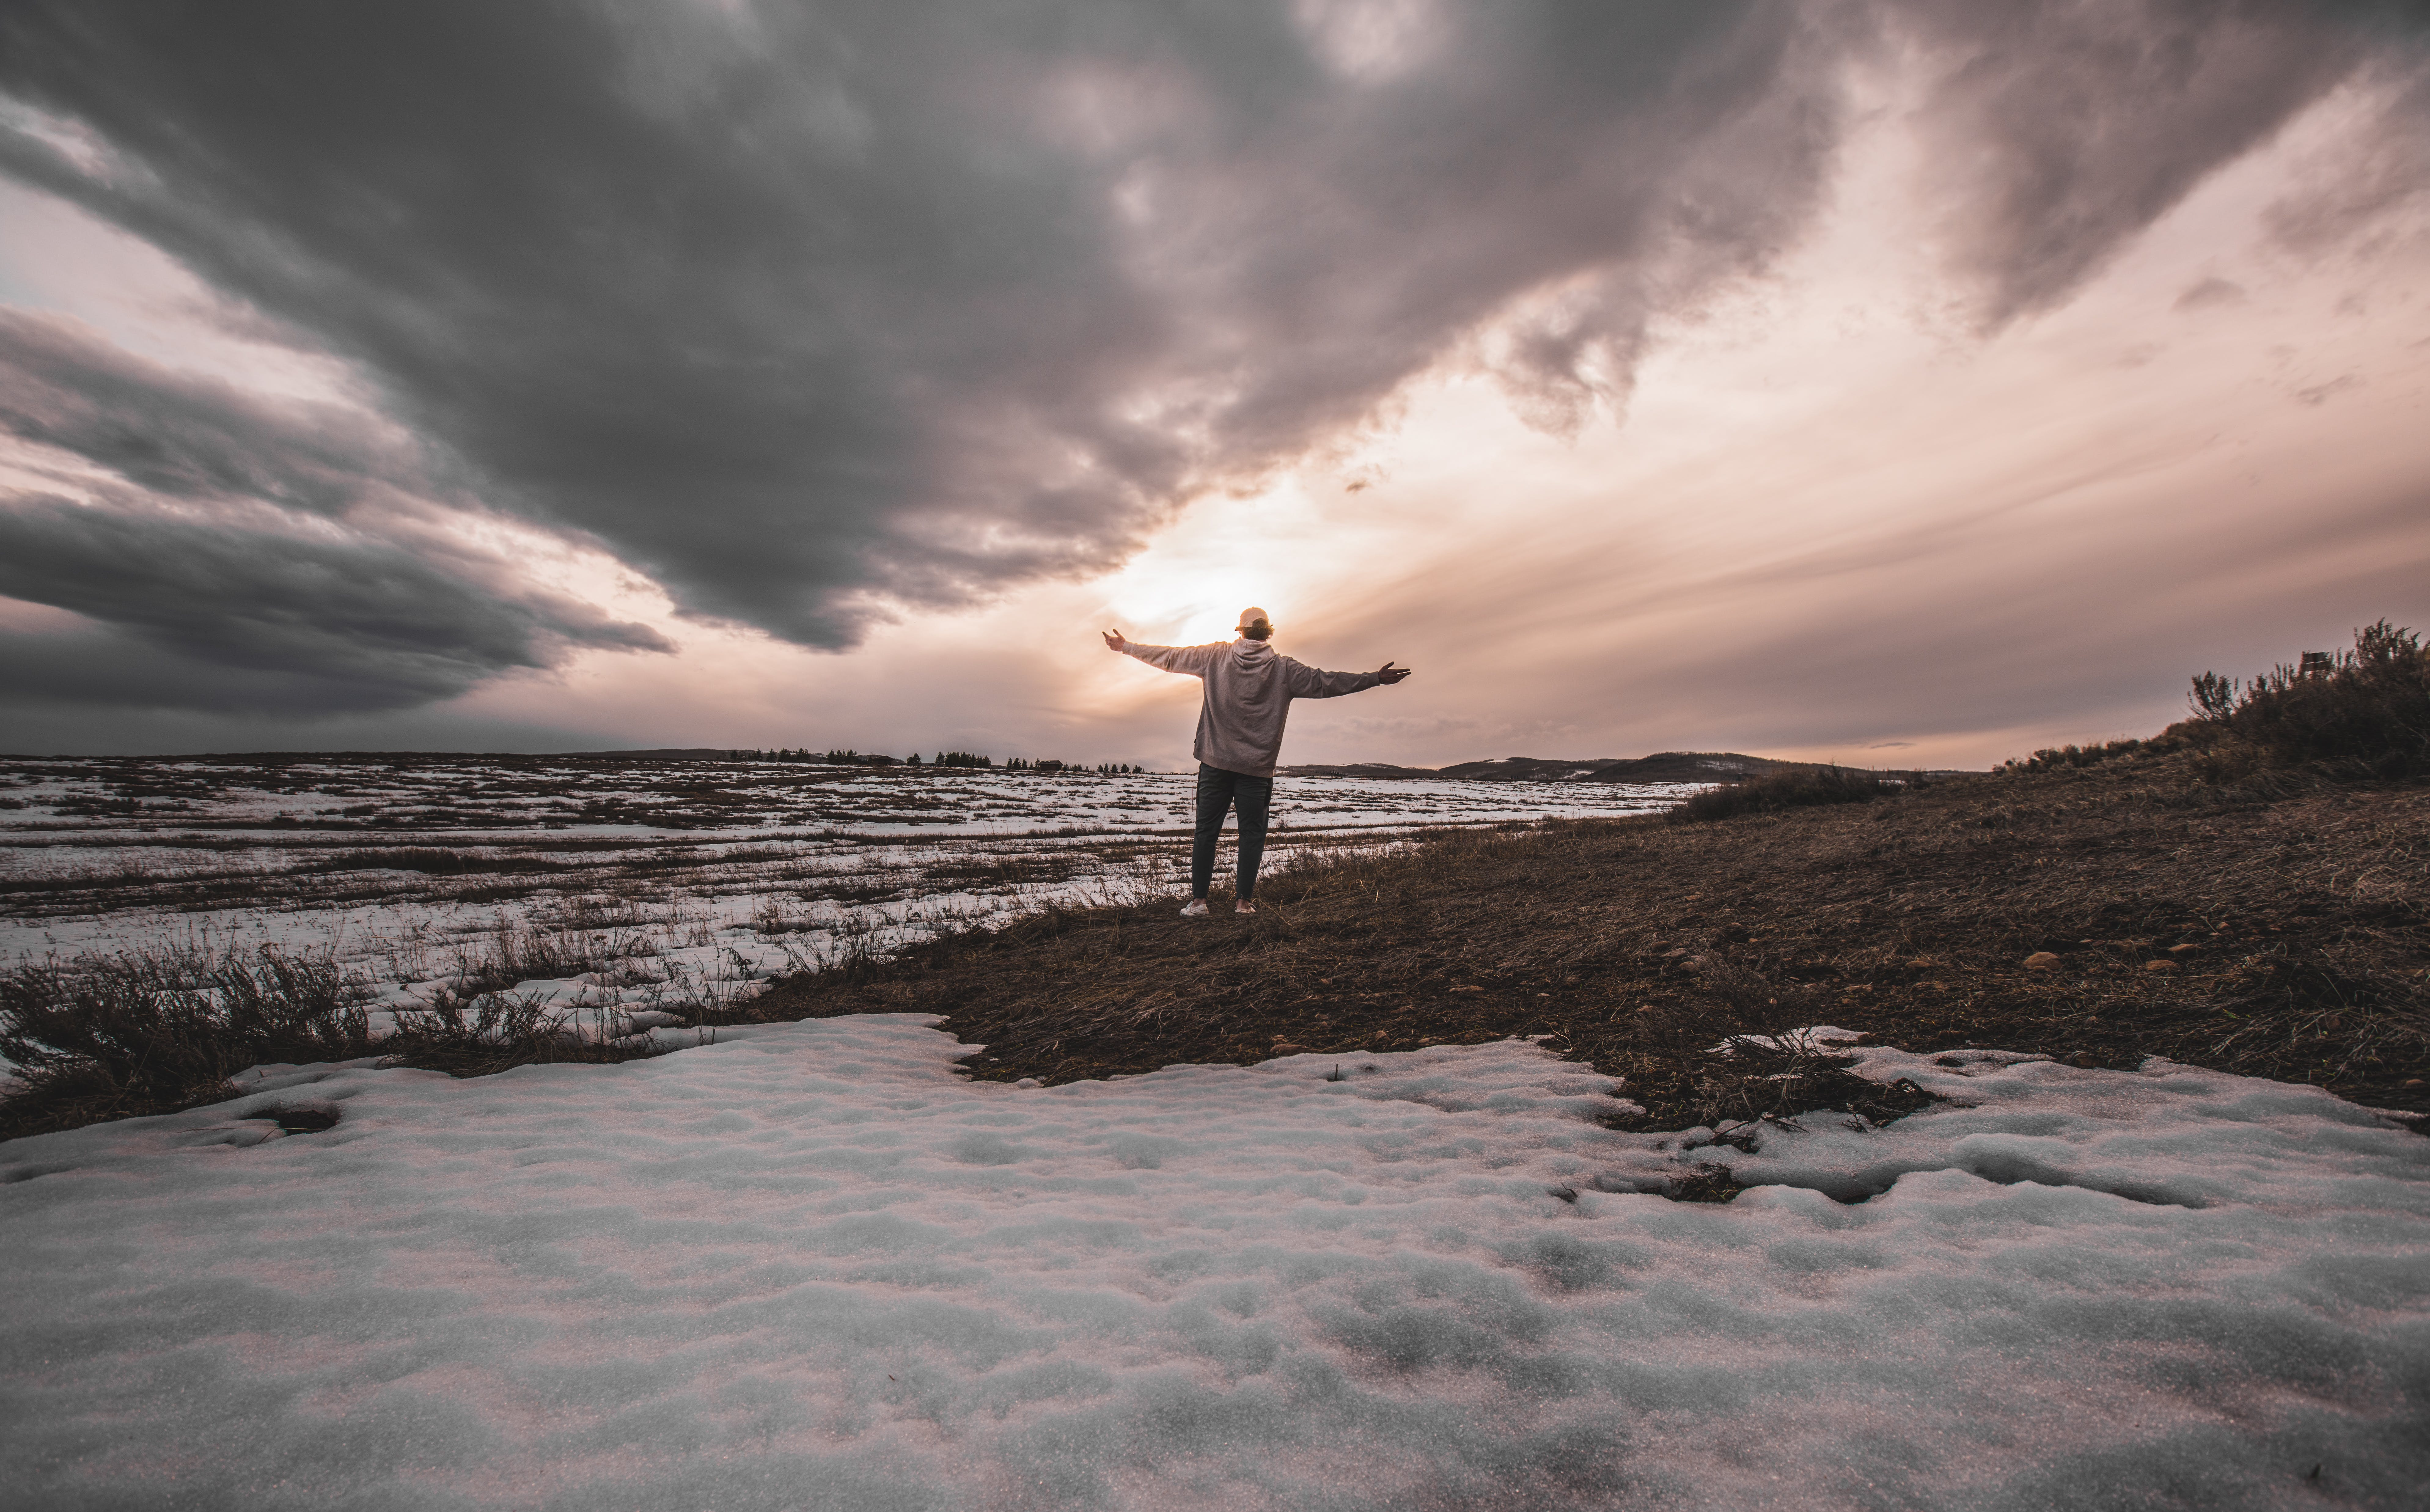 Person Standing on Snowy Field